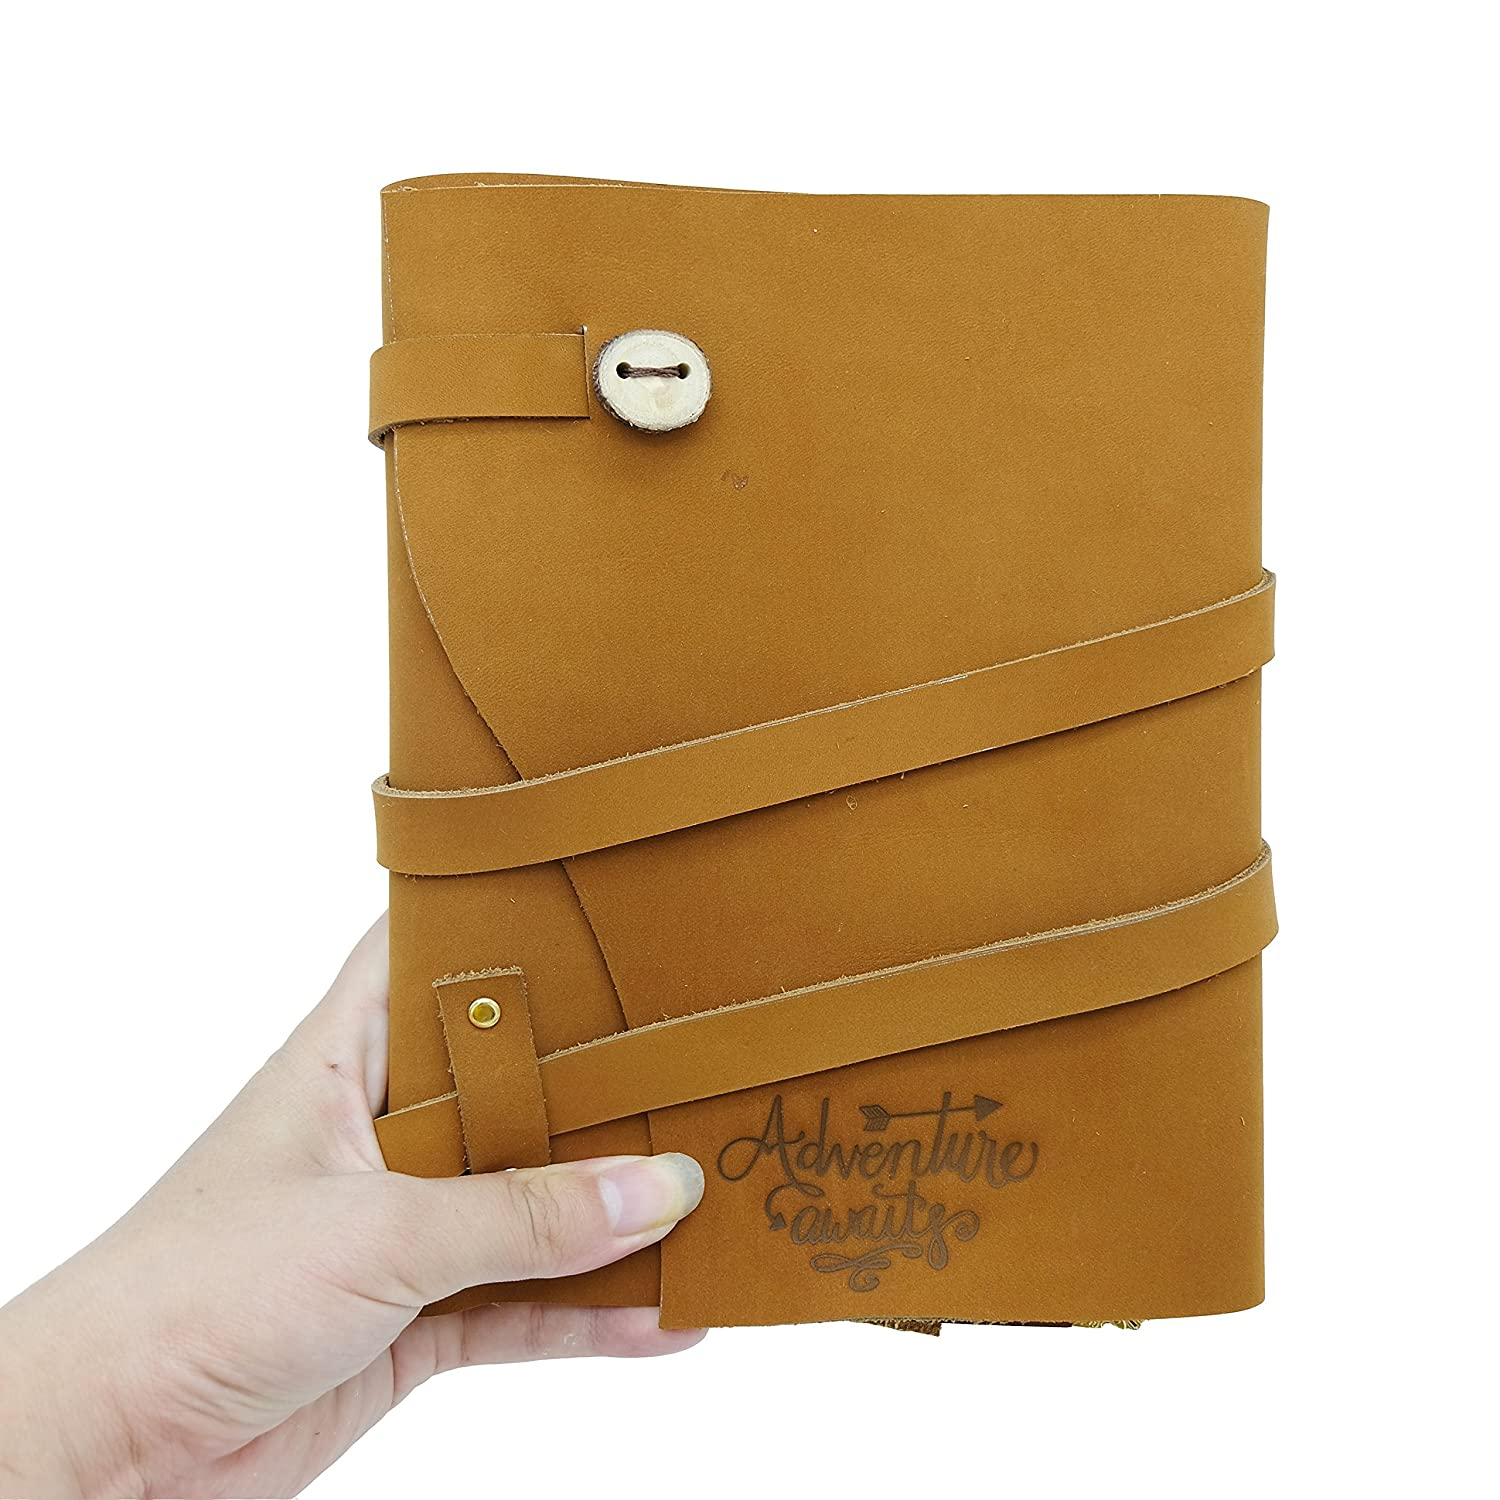 Premium Leather Journal Daily Planner | Monthly Planner | 3 Month Planner | 6 Month Planner | One Page Per Day Planner | 24 Month Planner